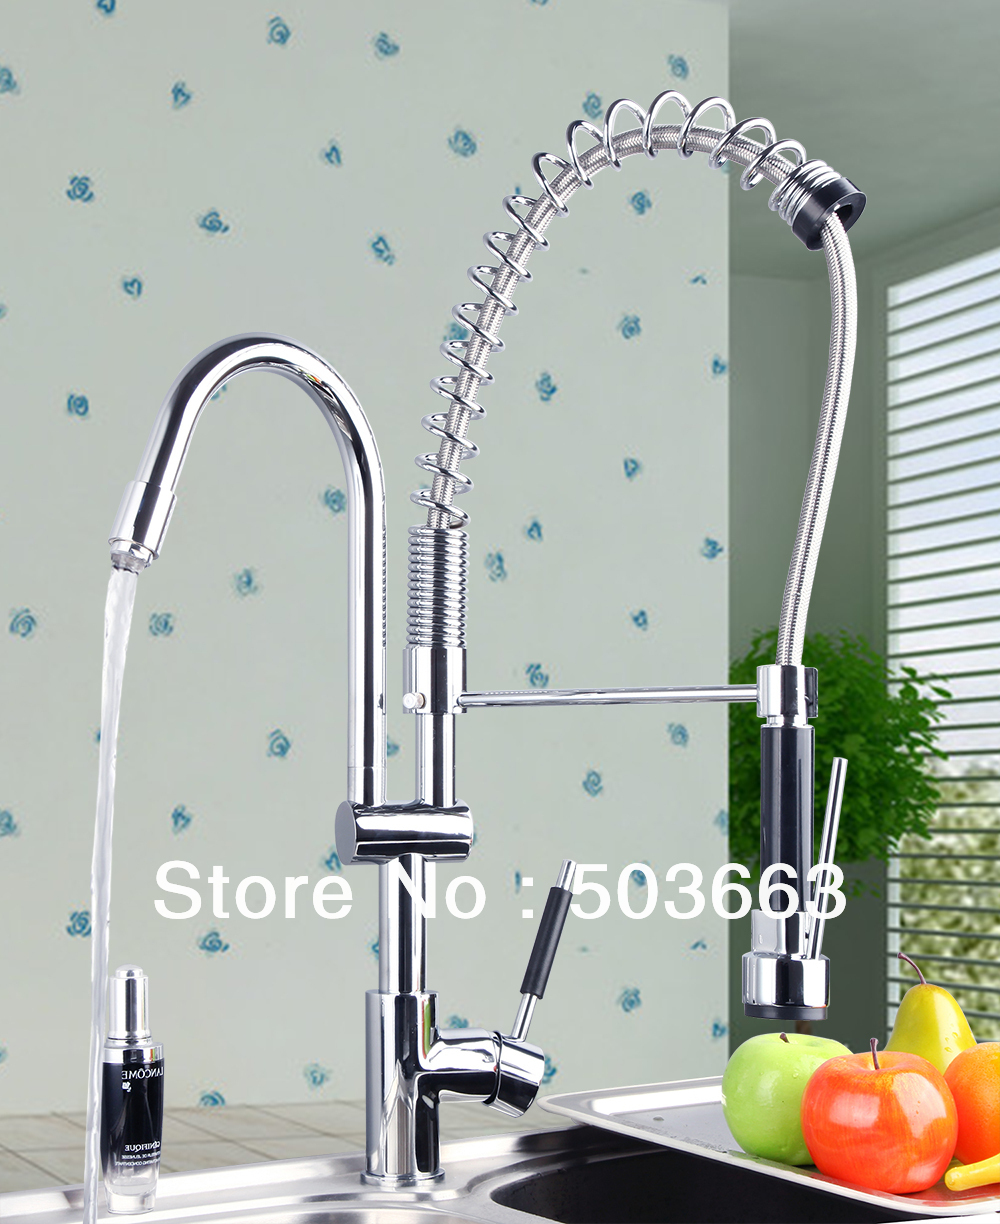 Double Handles Free Chrome Brass Water Kitchen Faucet Swivel Spout Pull Out Vessel Sink Single Handle Mixer Tap MF-268 hot free wholesale retail chrome brass water kitchen faucet swivel spout pull out vessel sink single handle mixer tap mf 264